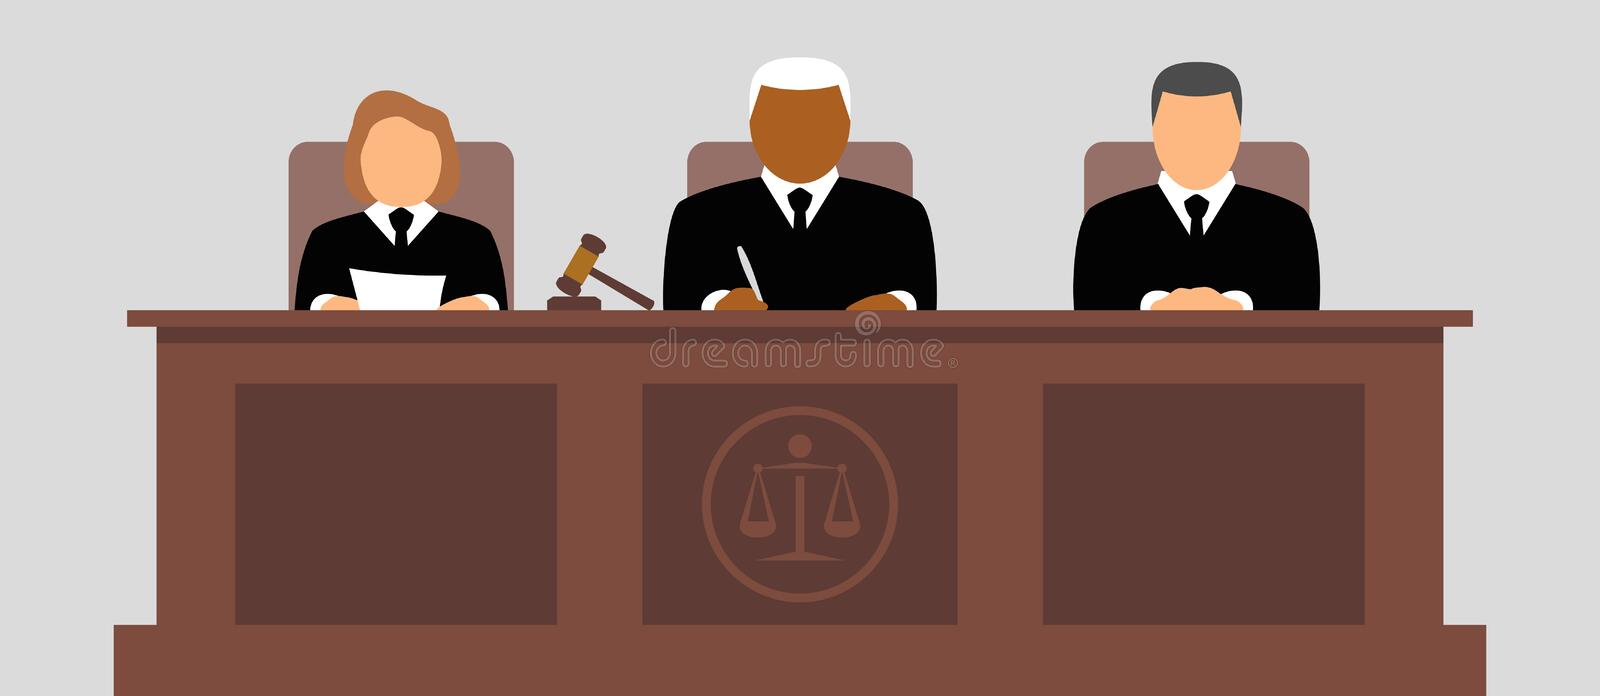 Judges icon. Judges in court vector icon vector illustration